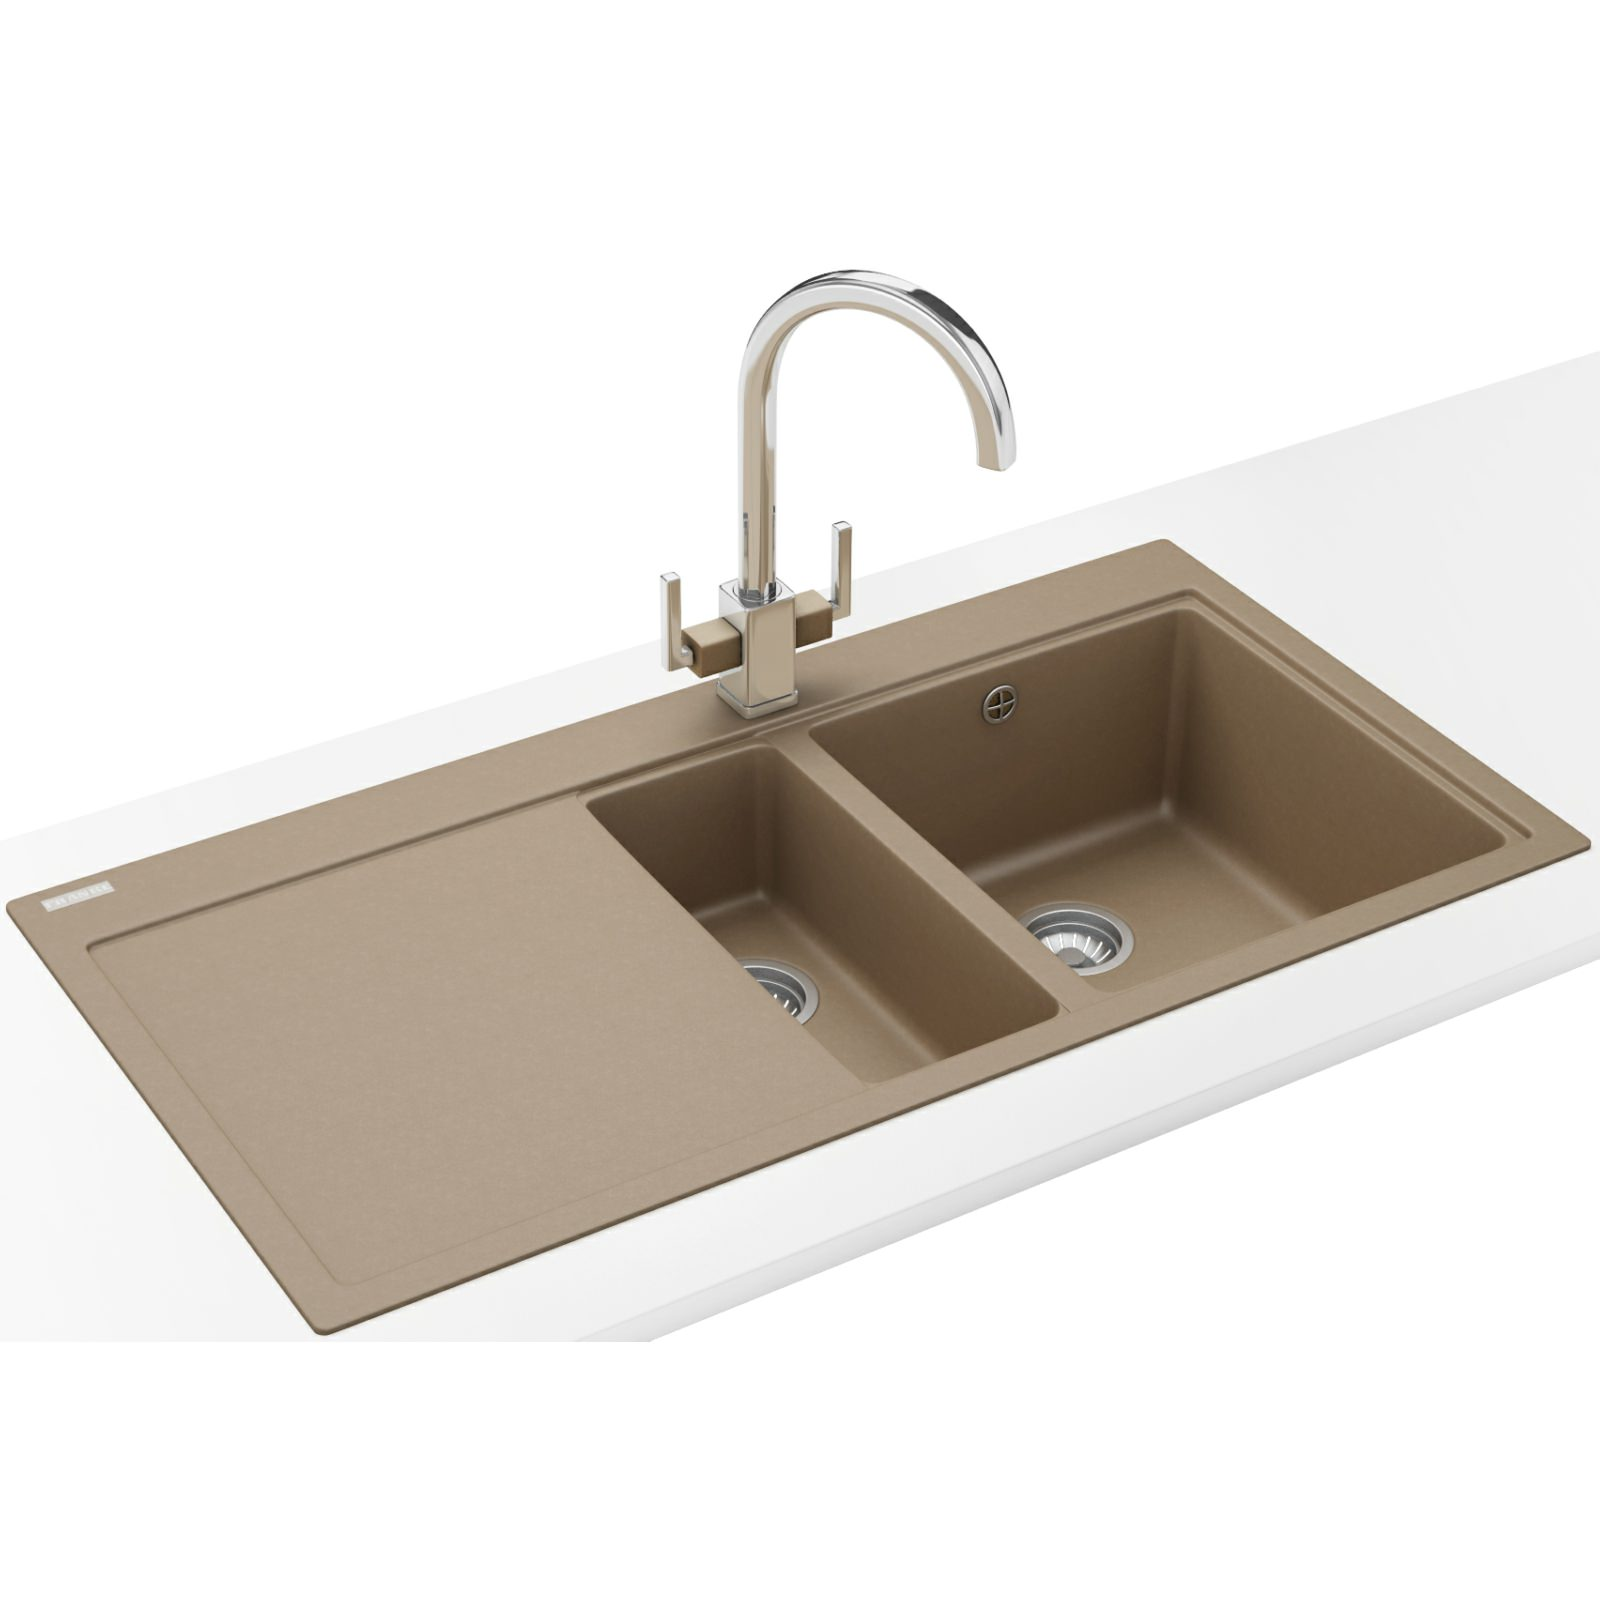 Franke Mythos Designer Pack Mtg 651 100 Fragranite Oyster Sink And Tap